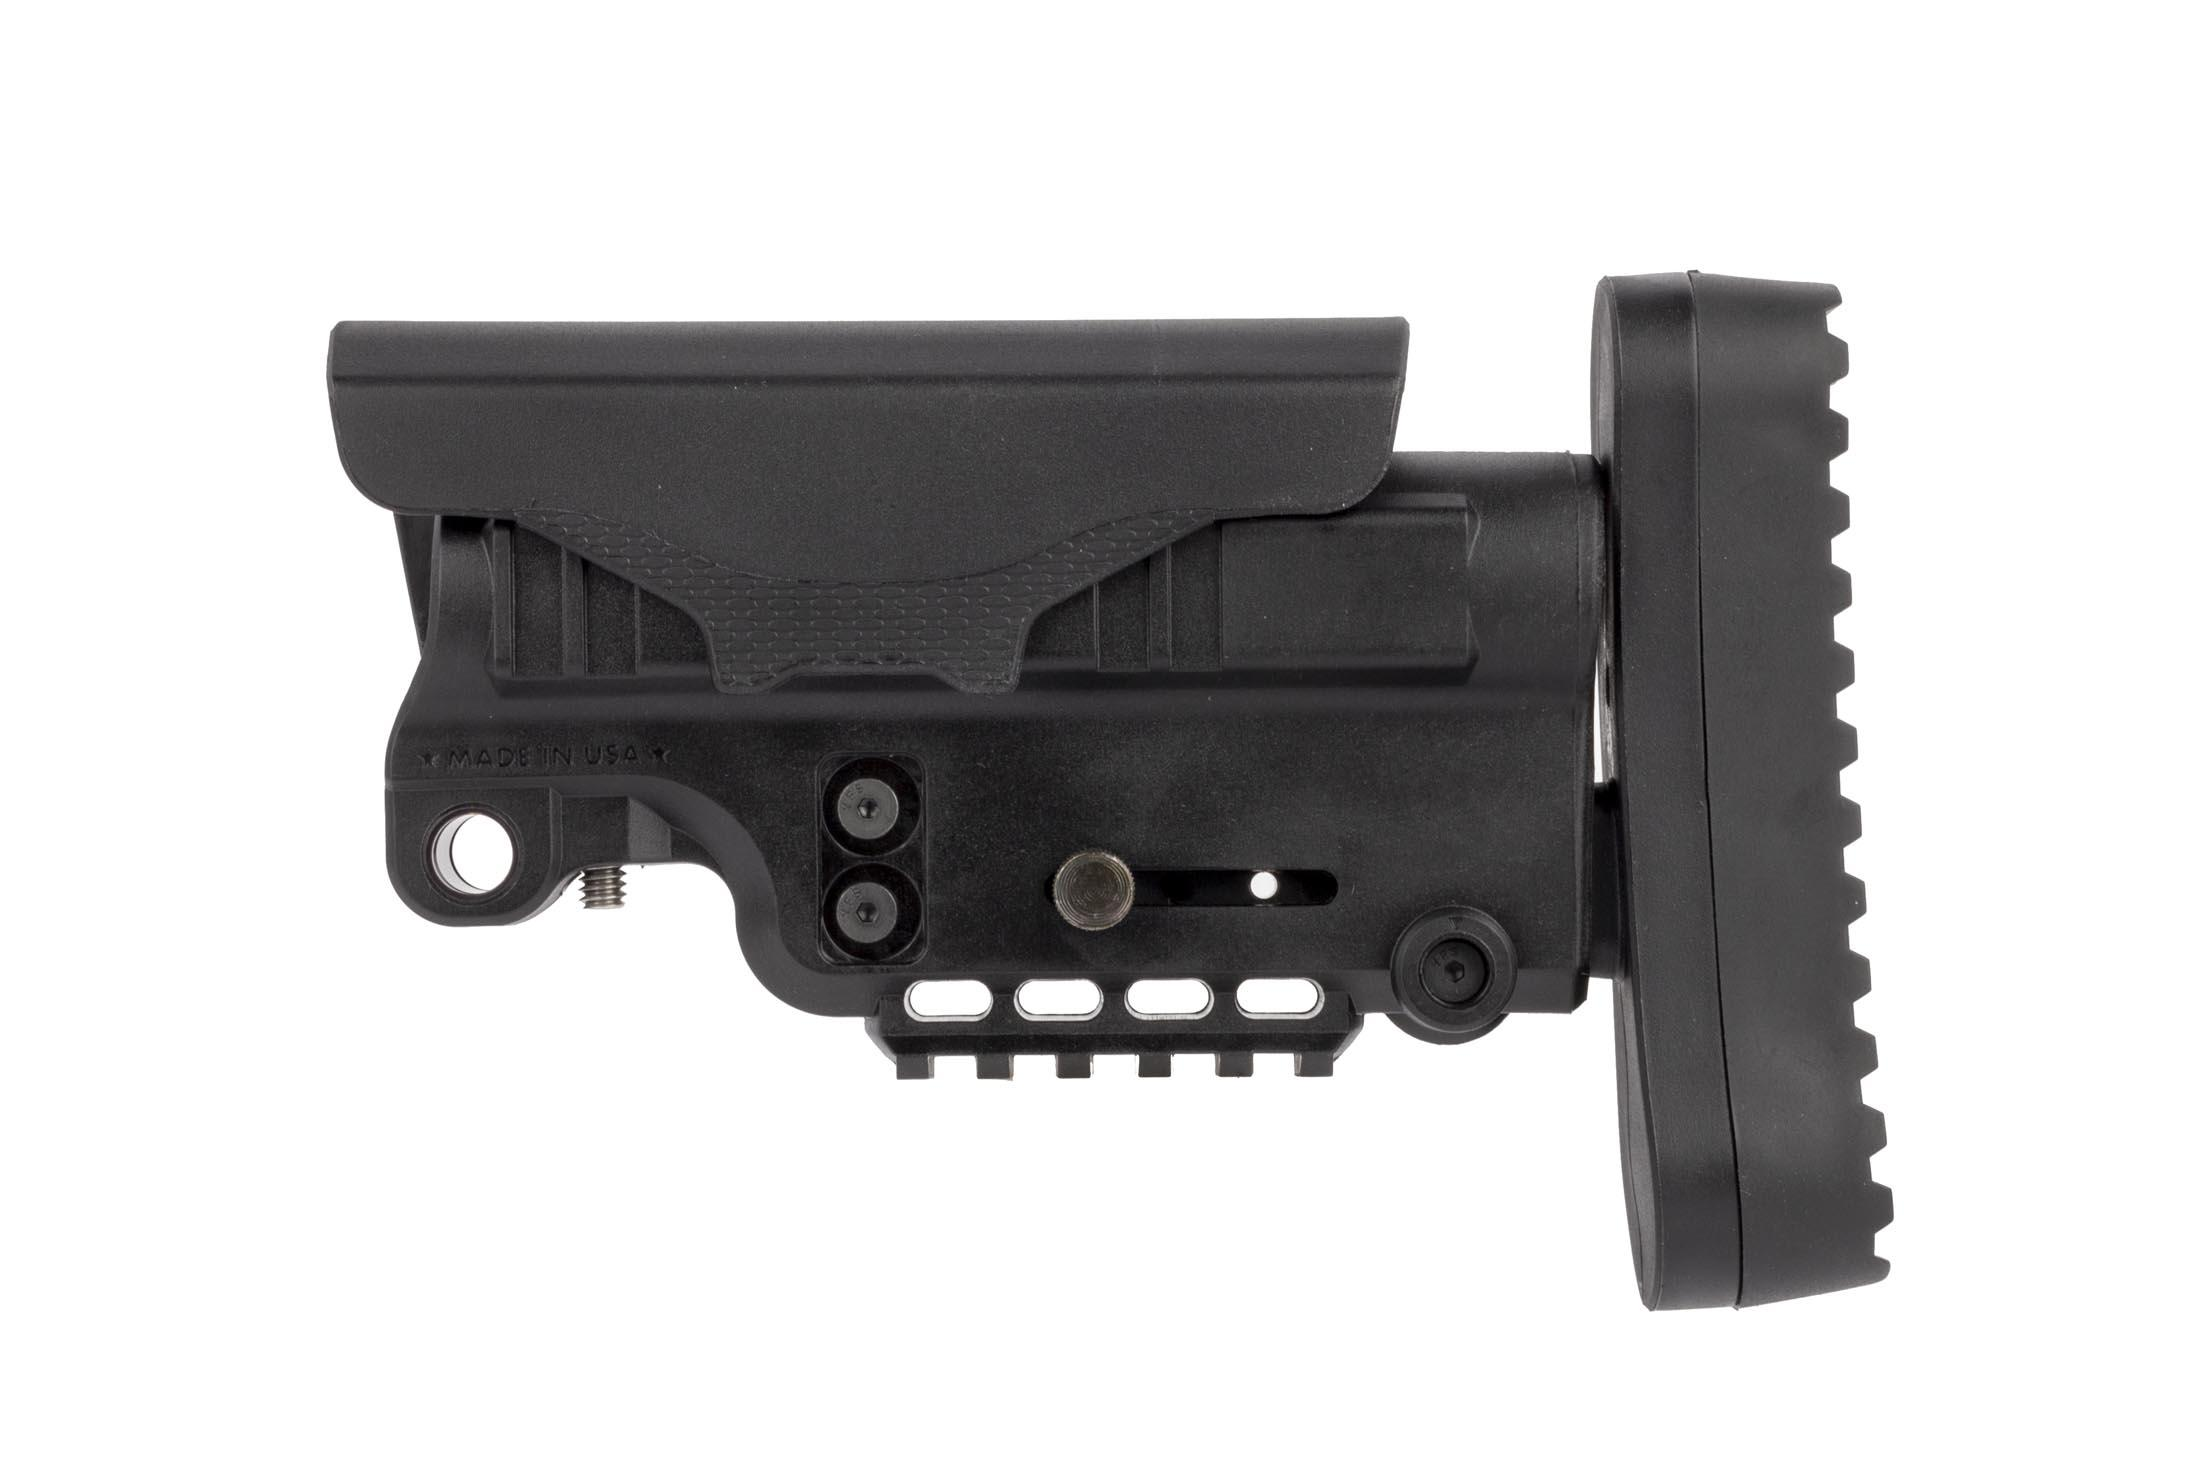 The American Built Arms Company urban stock features an ambidextrous QD sling swivel